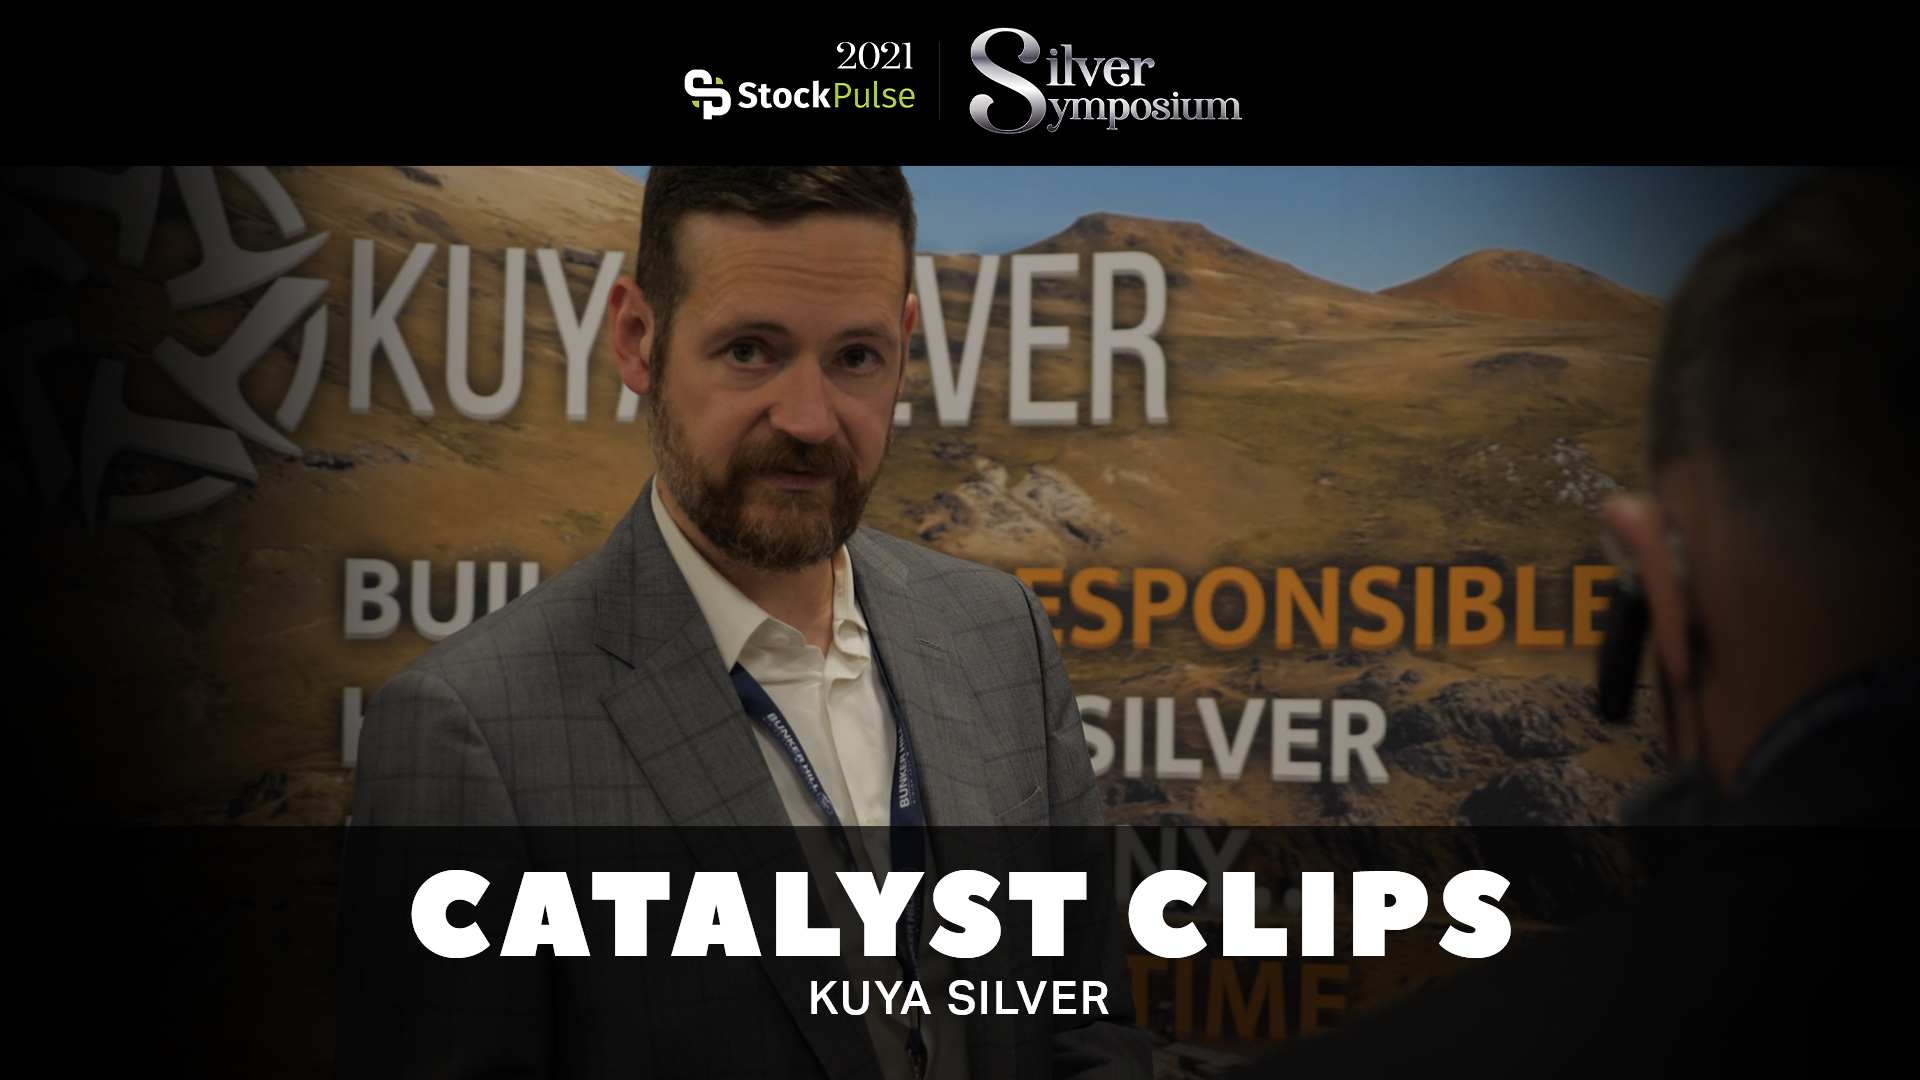 2021 StockPulse Silver Symposium Catalyst Clips | David Stein of Kuya Silver